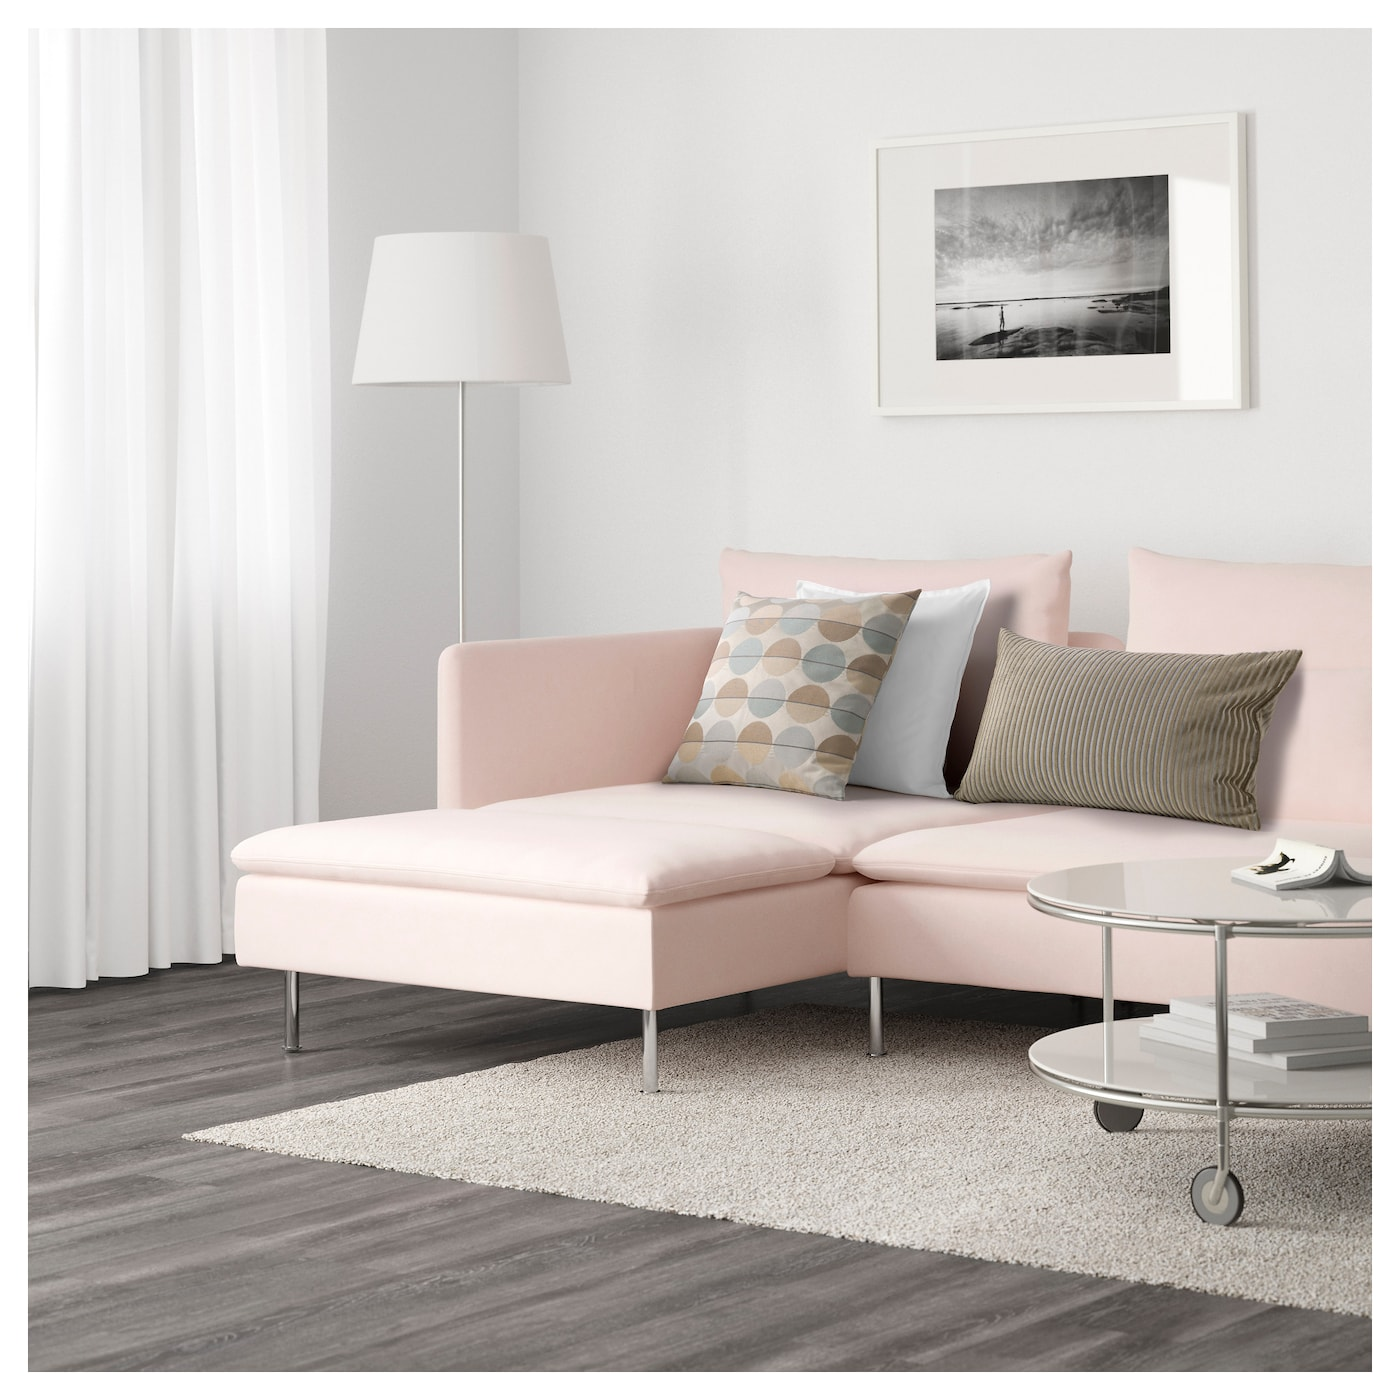 s derhamn 4 seat sofa with chaise longue samsta light pink. Black Bedroom Furniture Sets. Home Design Ideas